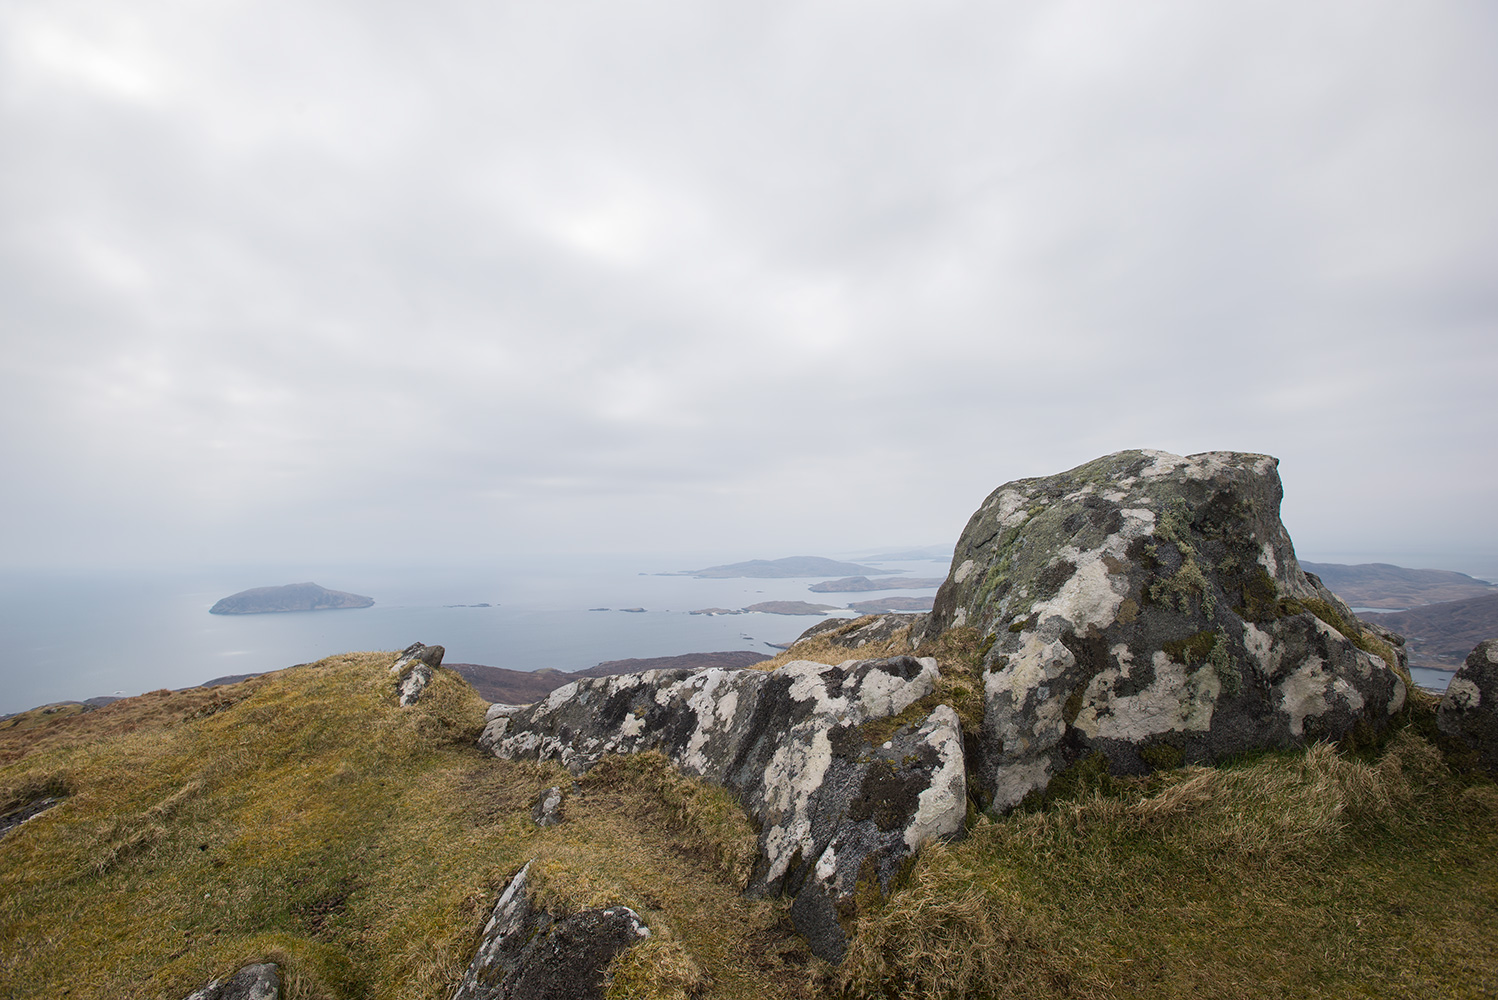 The summit of Heabhal - highest point on the island.